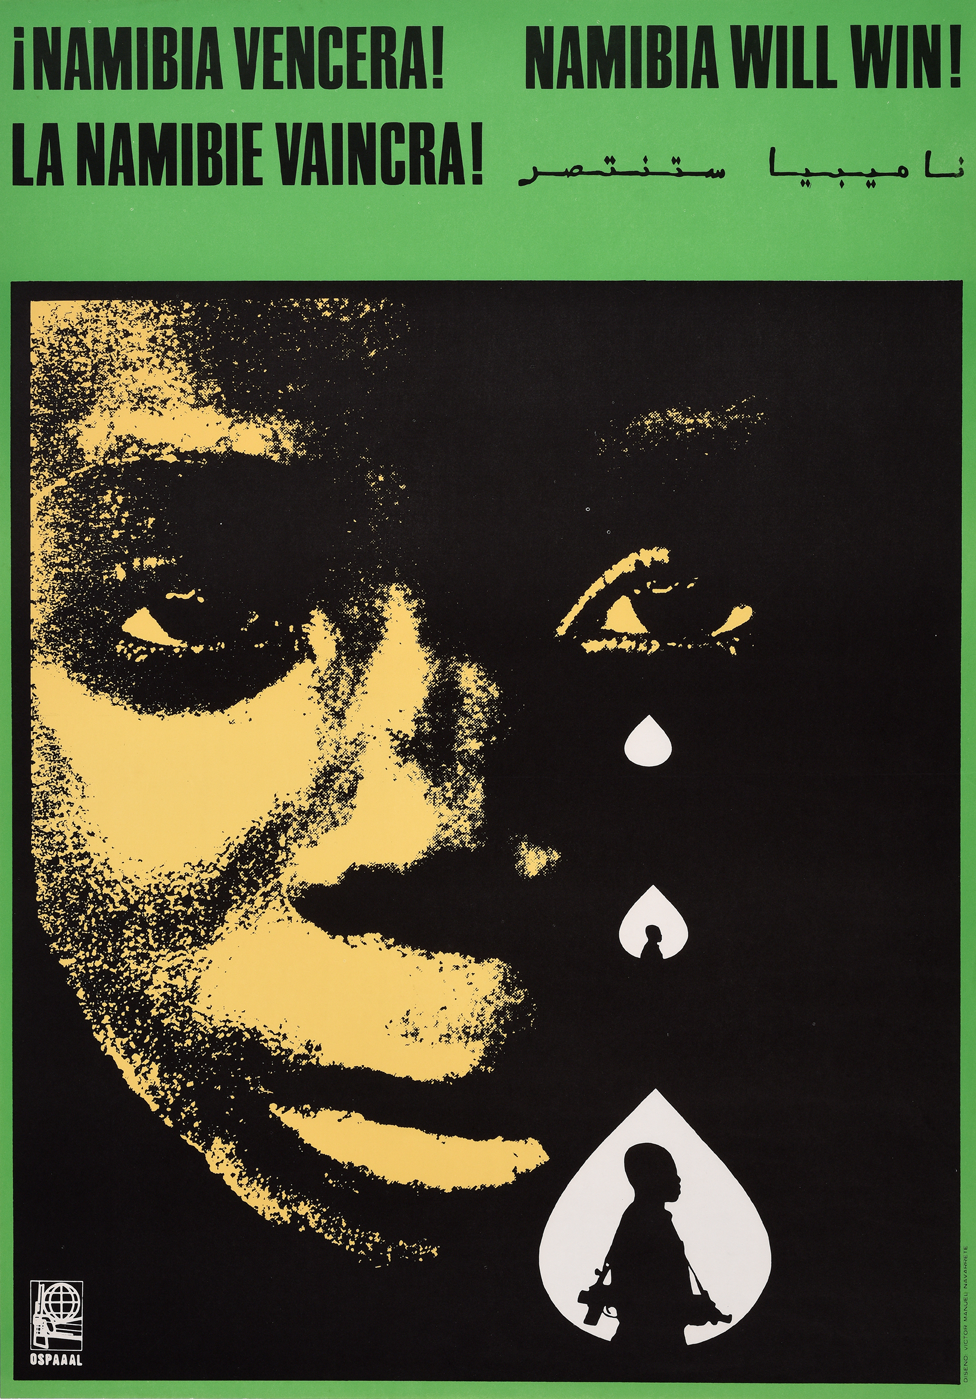 An Ospaaal poster entitled Namibia Will Win! 1977 showing the child crying and the image of a fighter in one tear